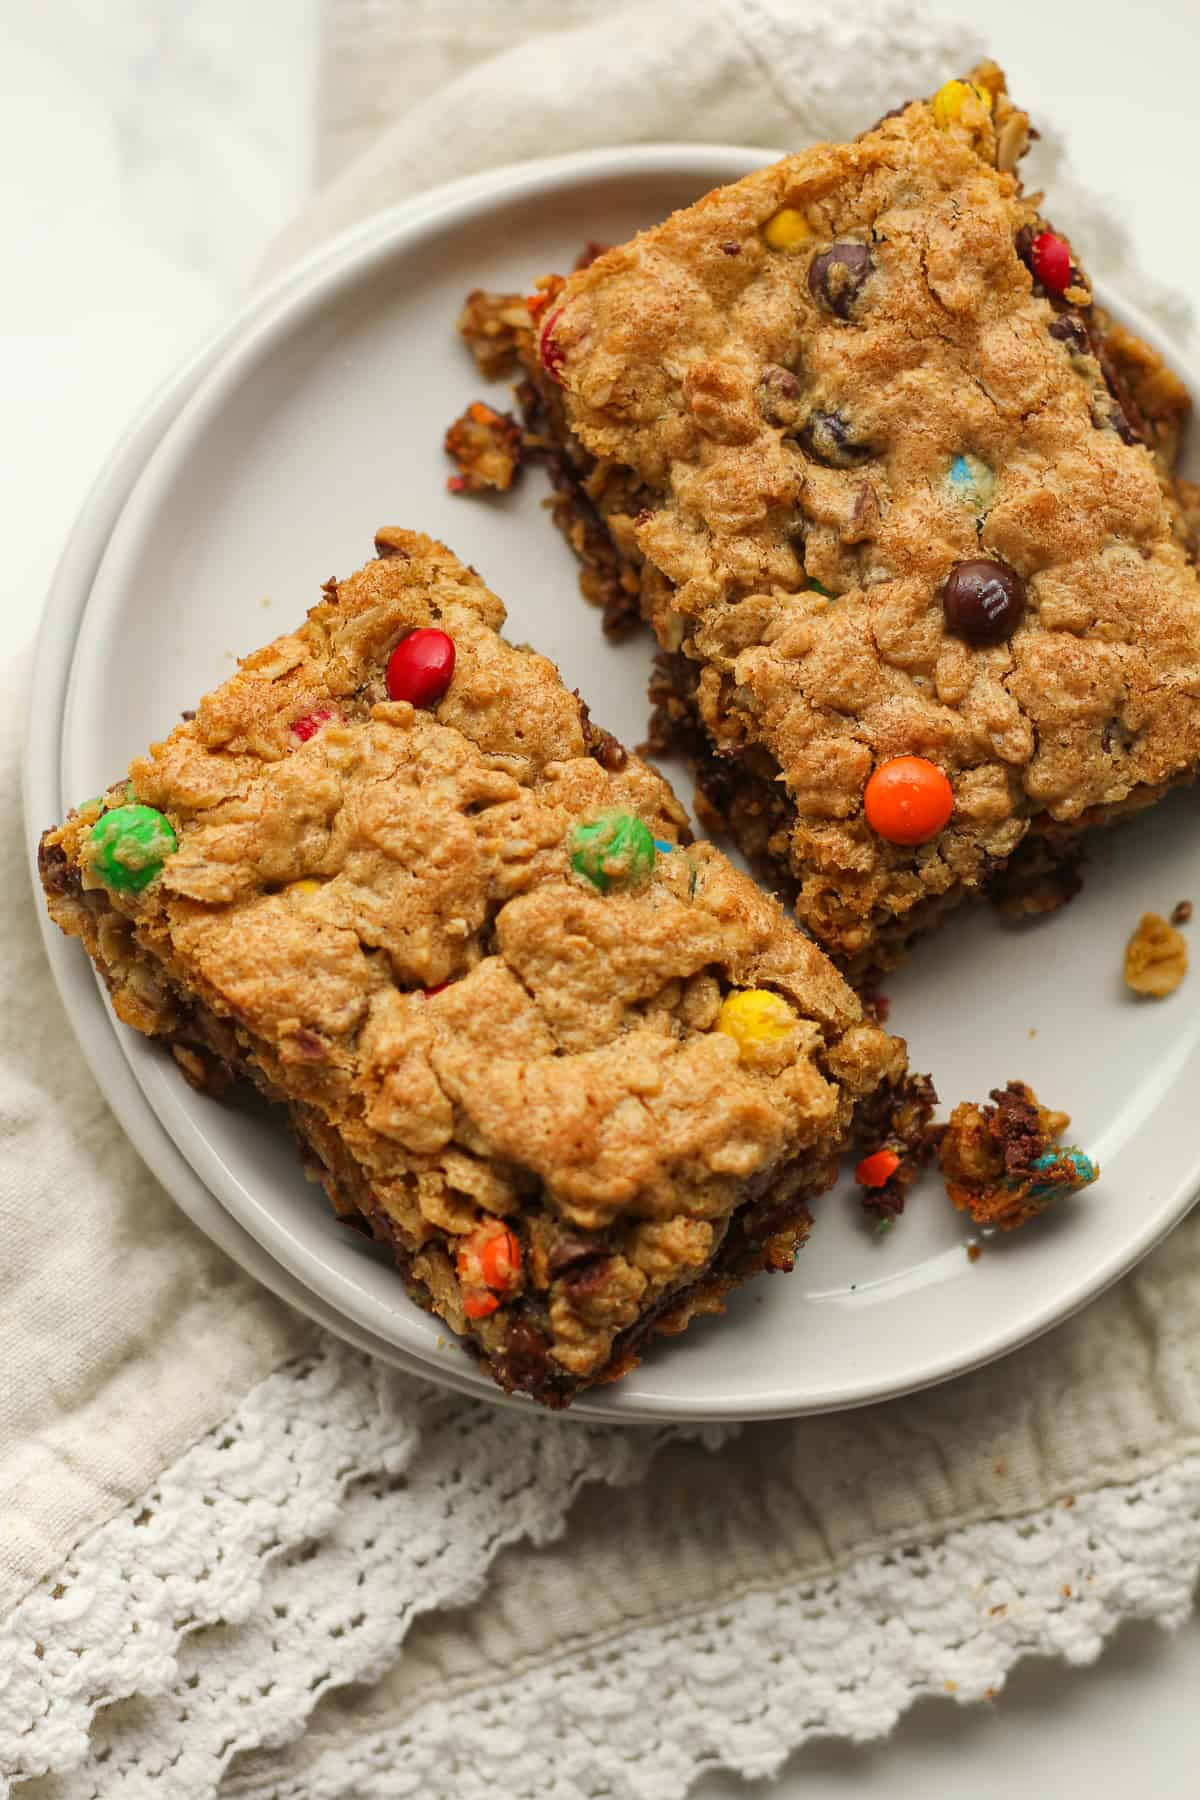 Two monster cookie bars on a plate.